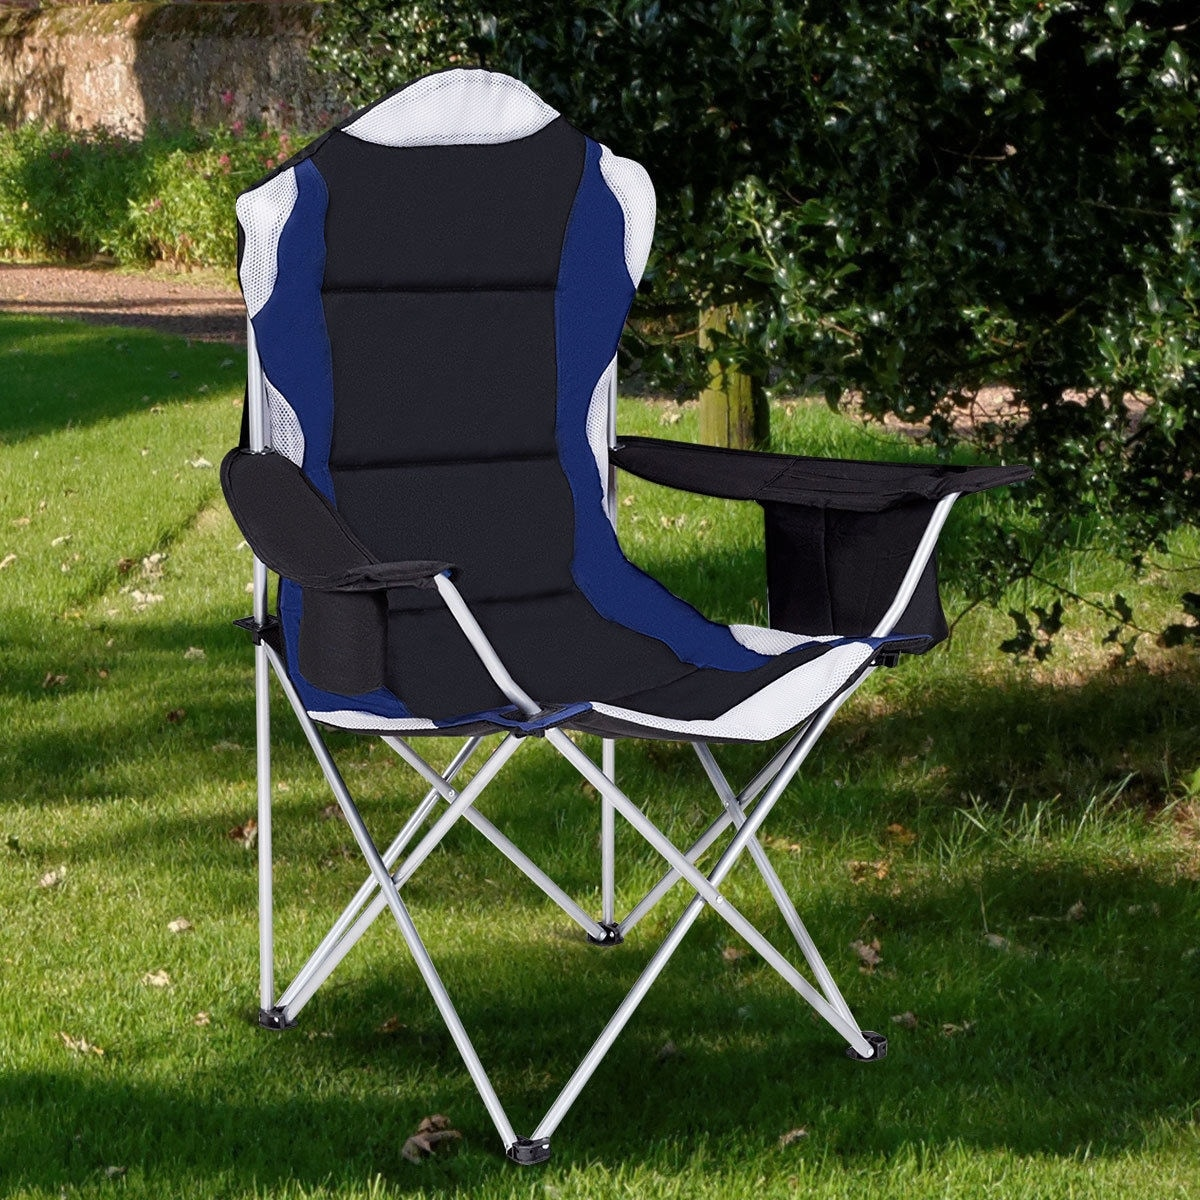 Picnic Chairs Costway Fishing Camping Chair Seat Cup Holder Beach Picnic Outdoor Portable Folding Bag